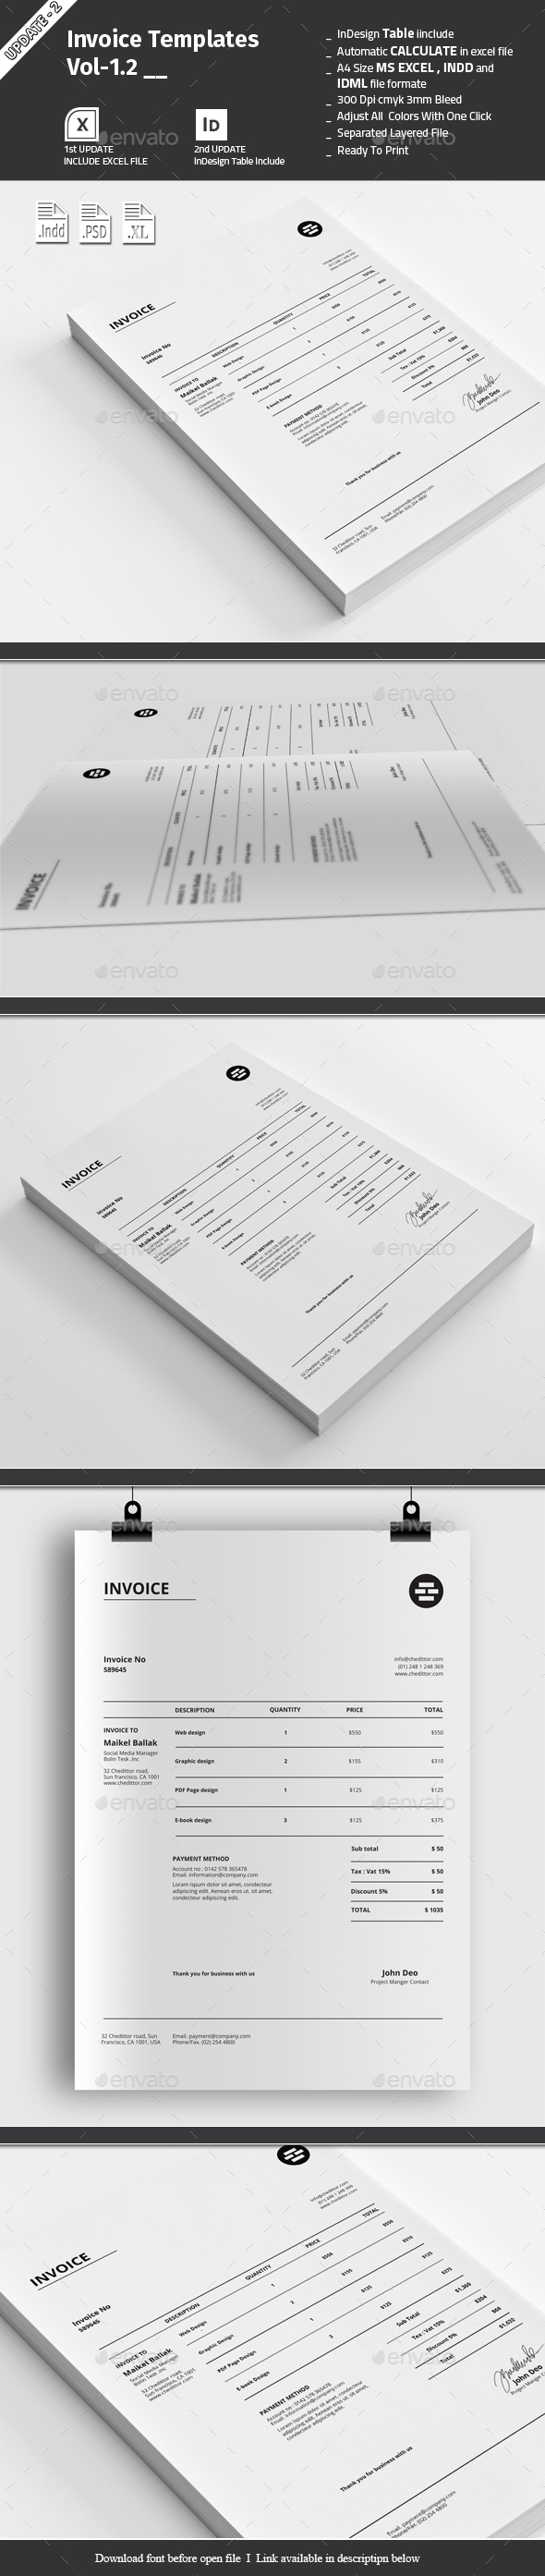 Invoice Templates Vol-1.2 - Proposals & Invoices Stationery